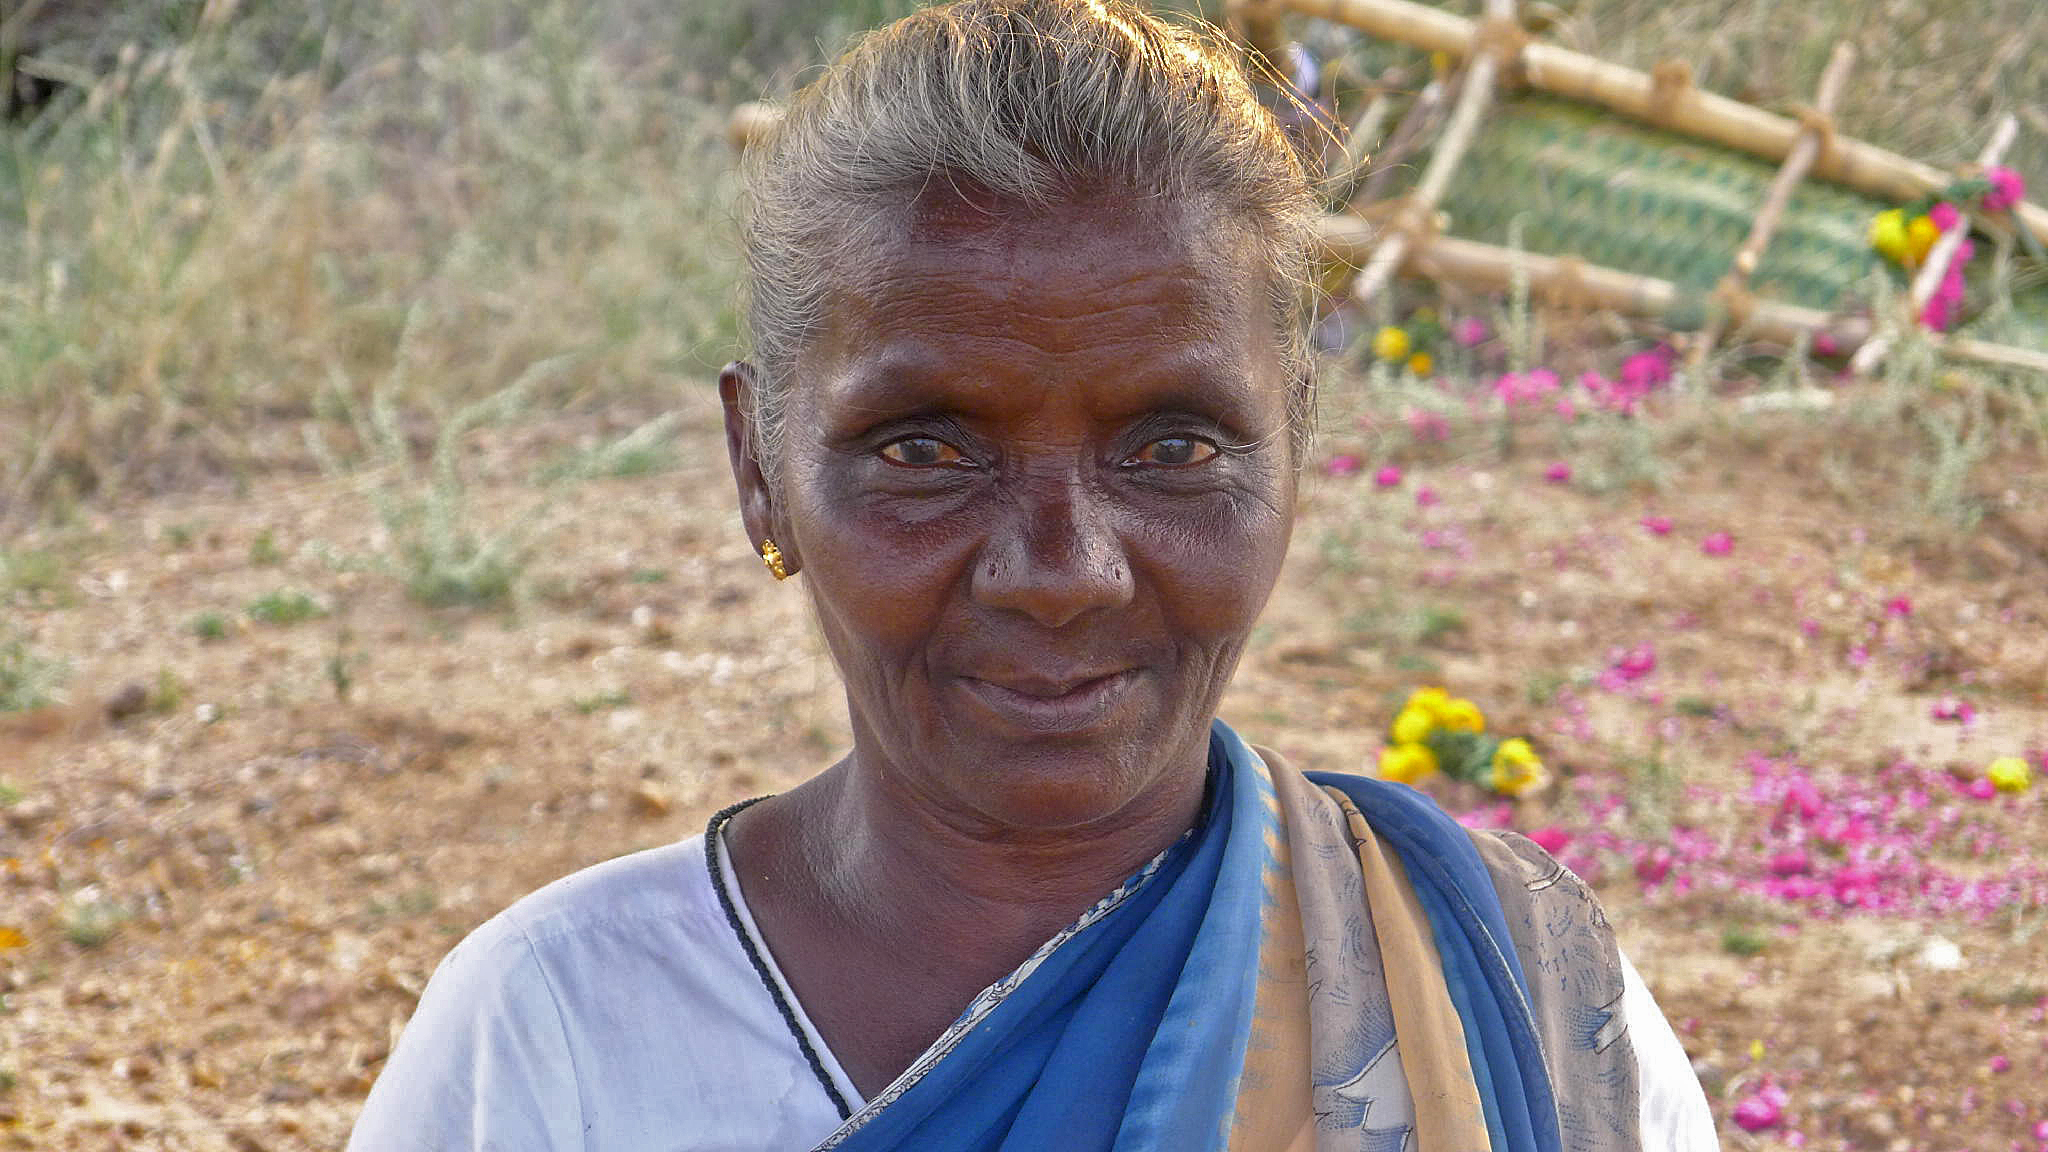 Meenakshi - the first woman cremation worker in India